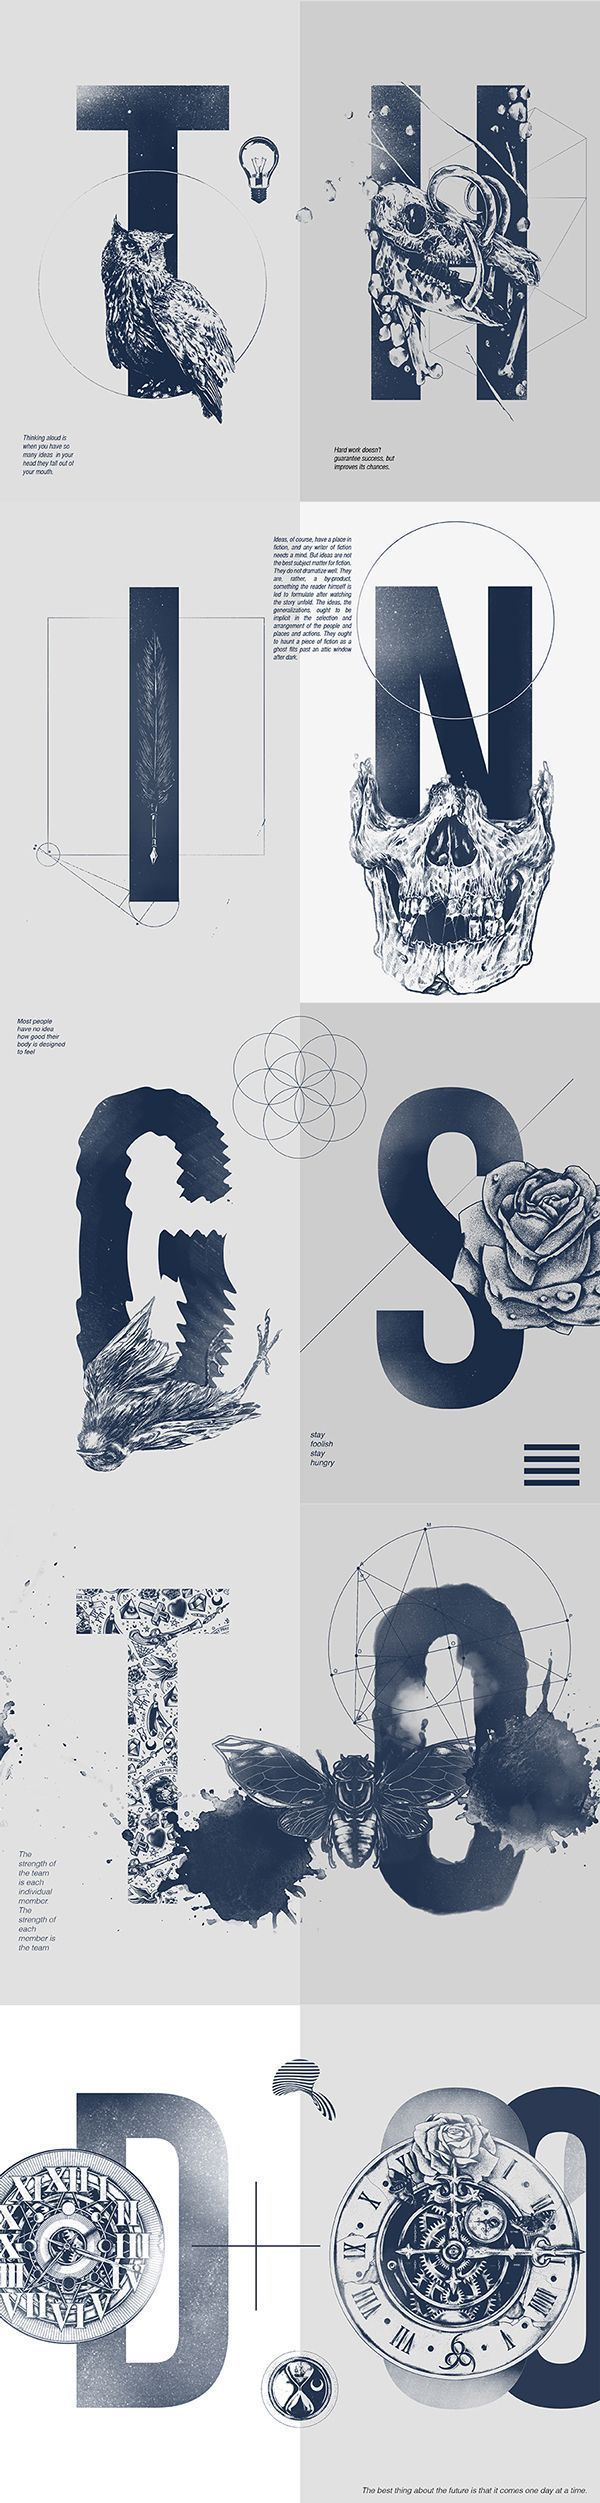 Things-To-Do par Cahya Sofyan - typographie